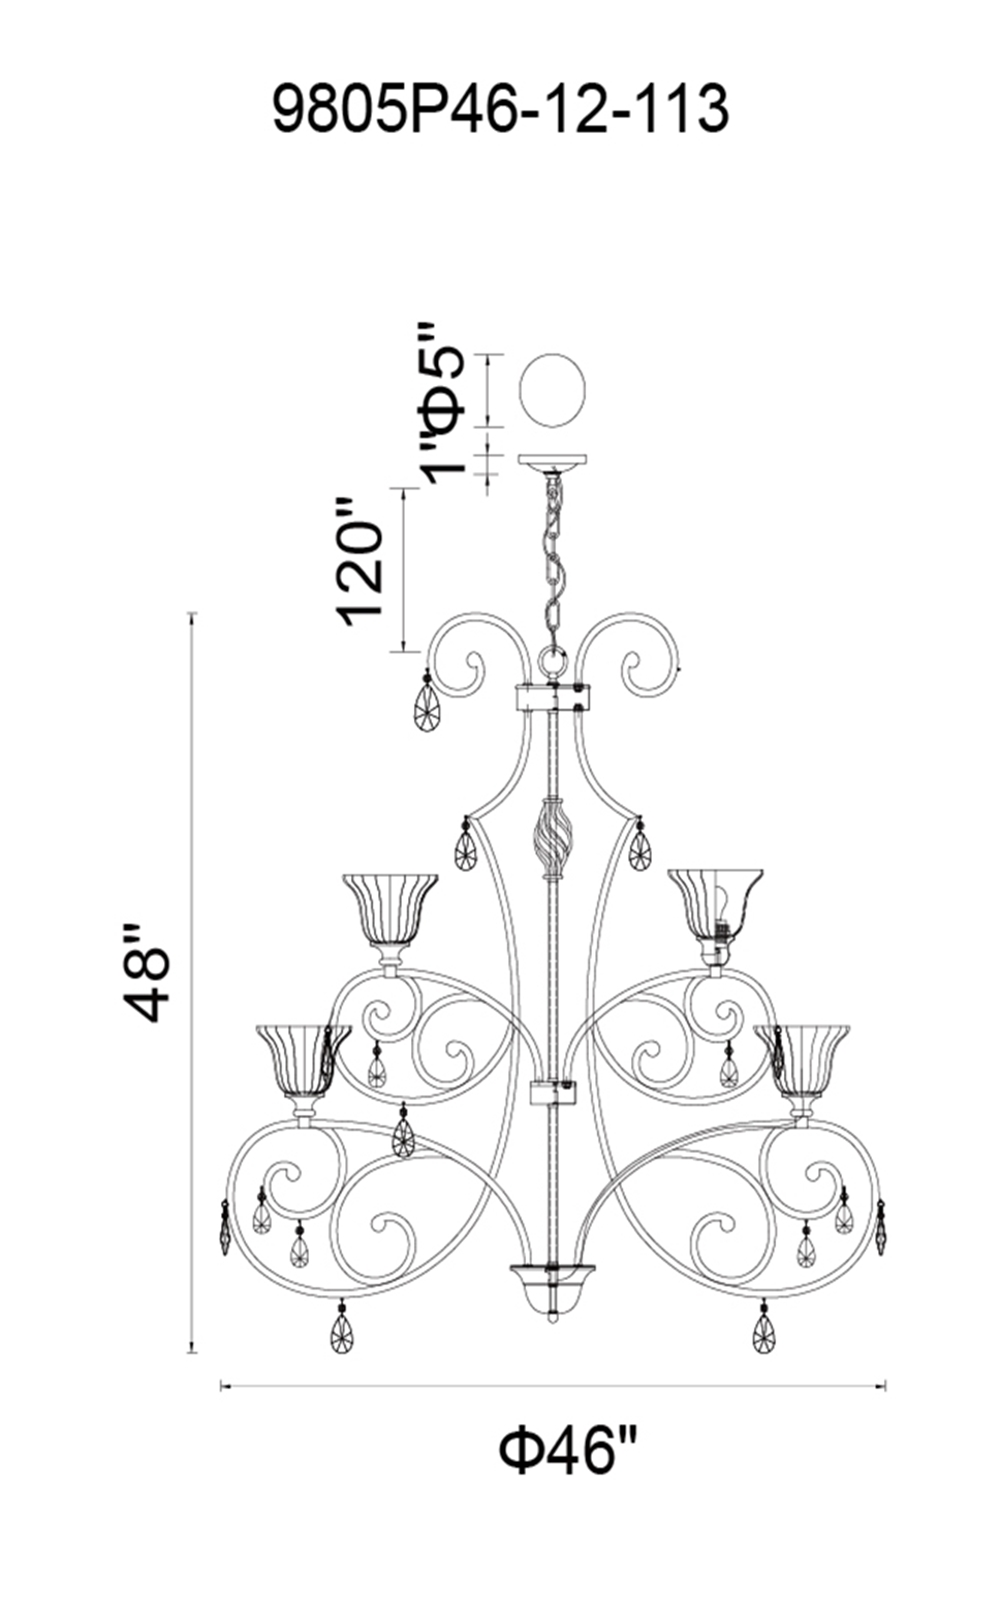 CWI Lighting Shakira 12 Light Candle Chandelier With Dark Bronze Model: 9805P46-12-113 Line Drawing